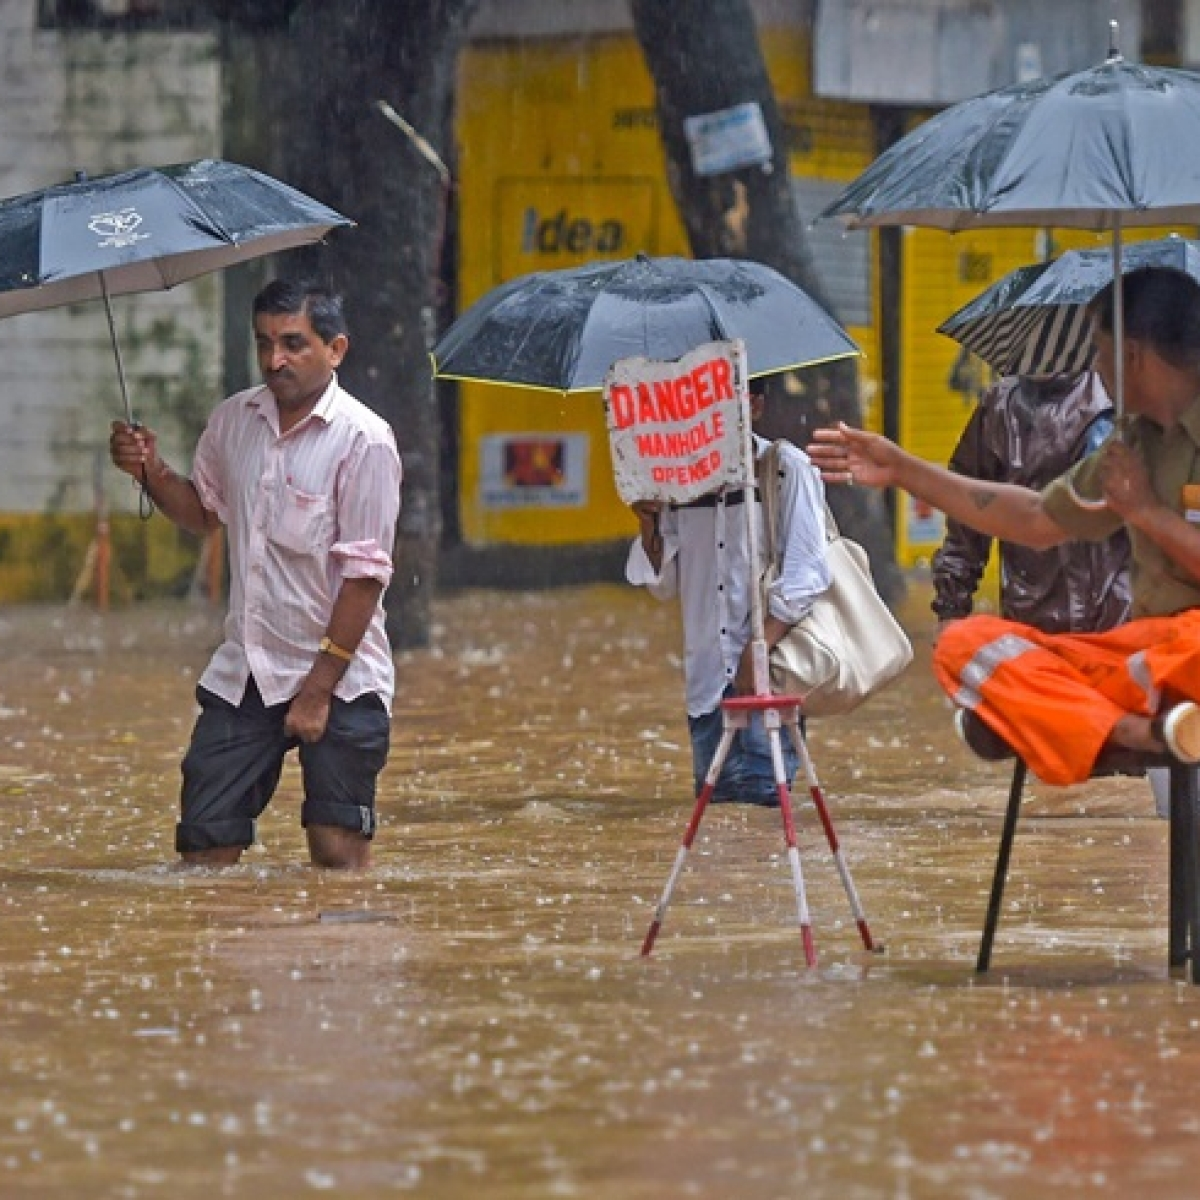 Monsoon 2020: India likely to receive 'normal' rainfall says IMD